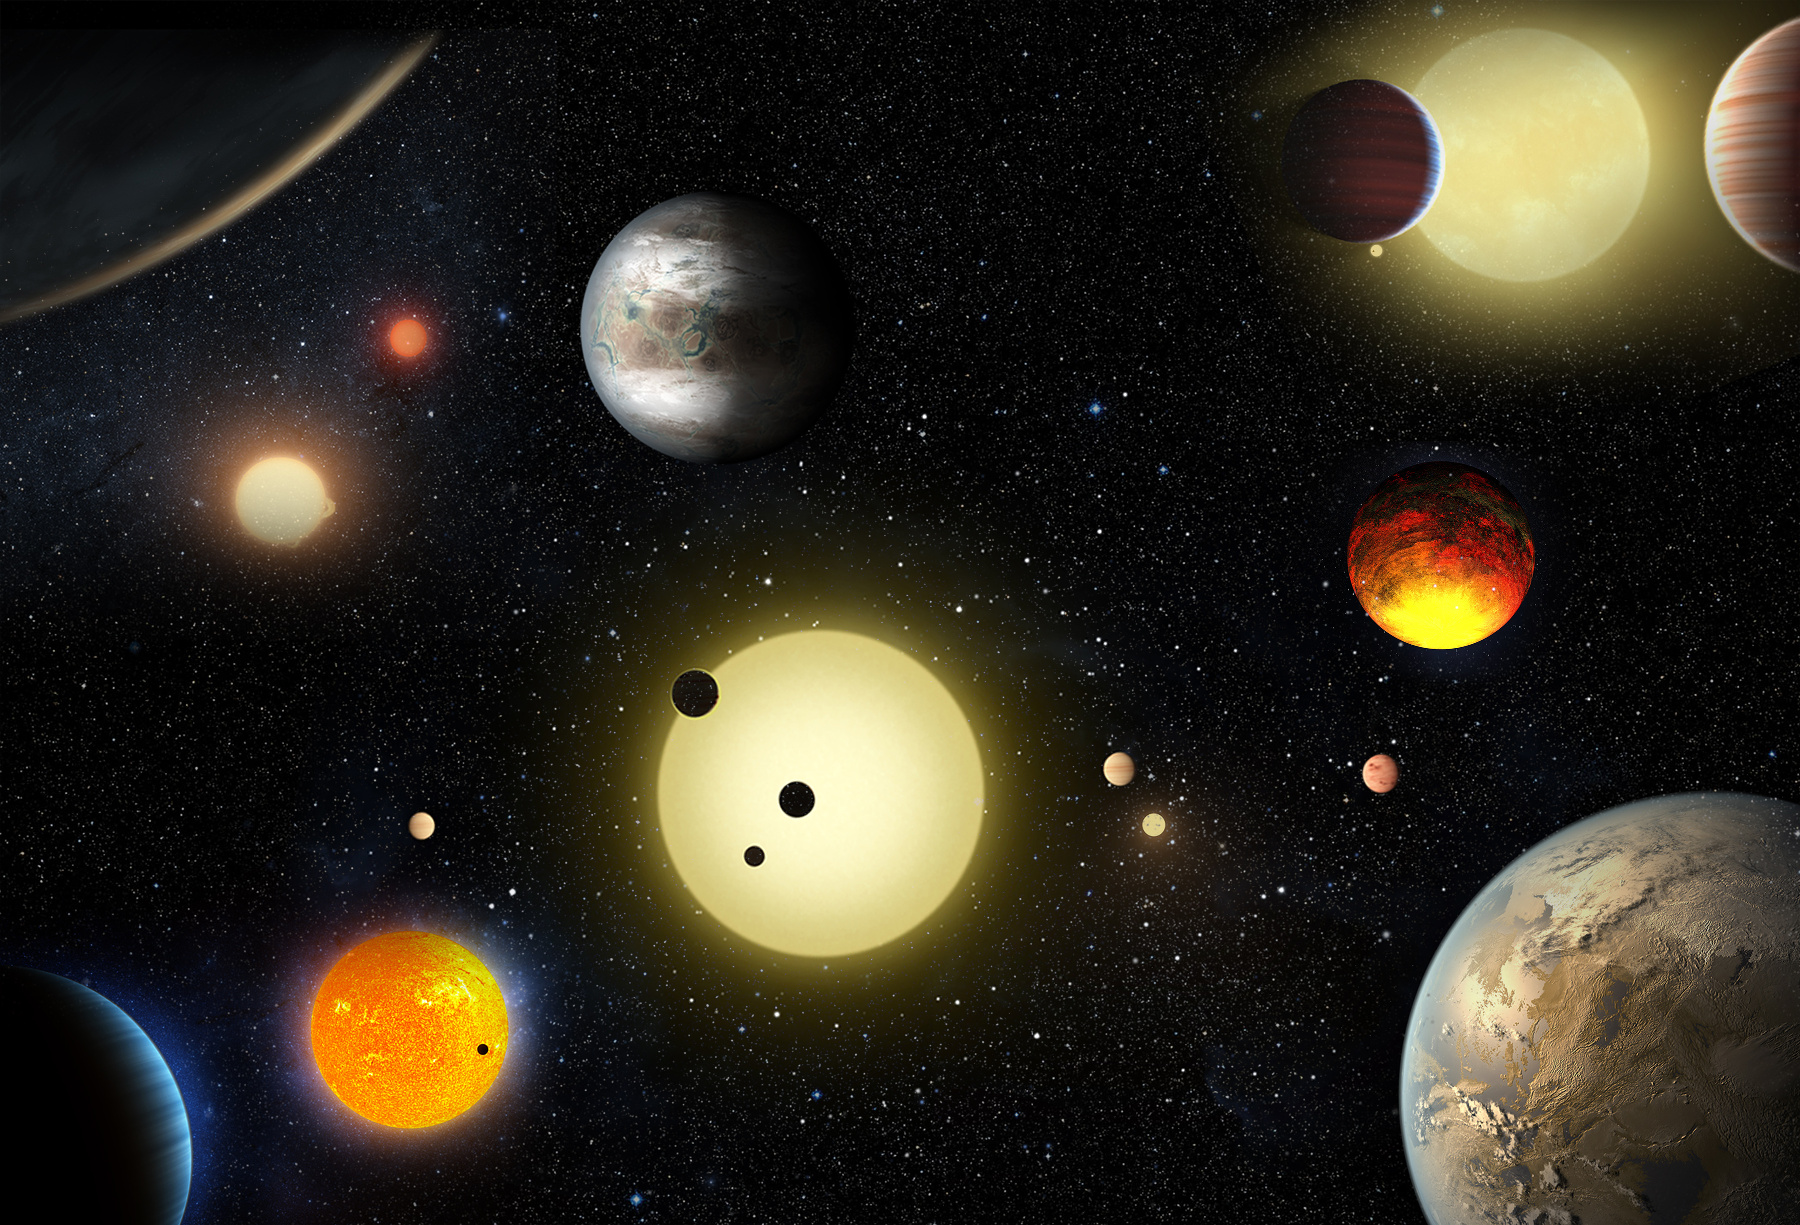 This artist's concept depicts select planetary discoveries made to date by NASA's Kepler space telescope. Illustration credits: NASA/W. Stenzel.